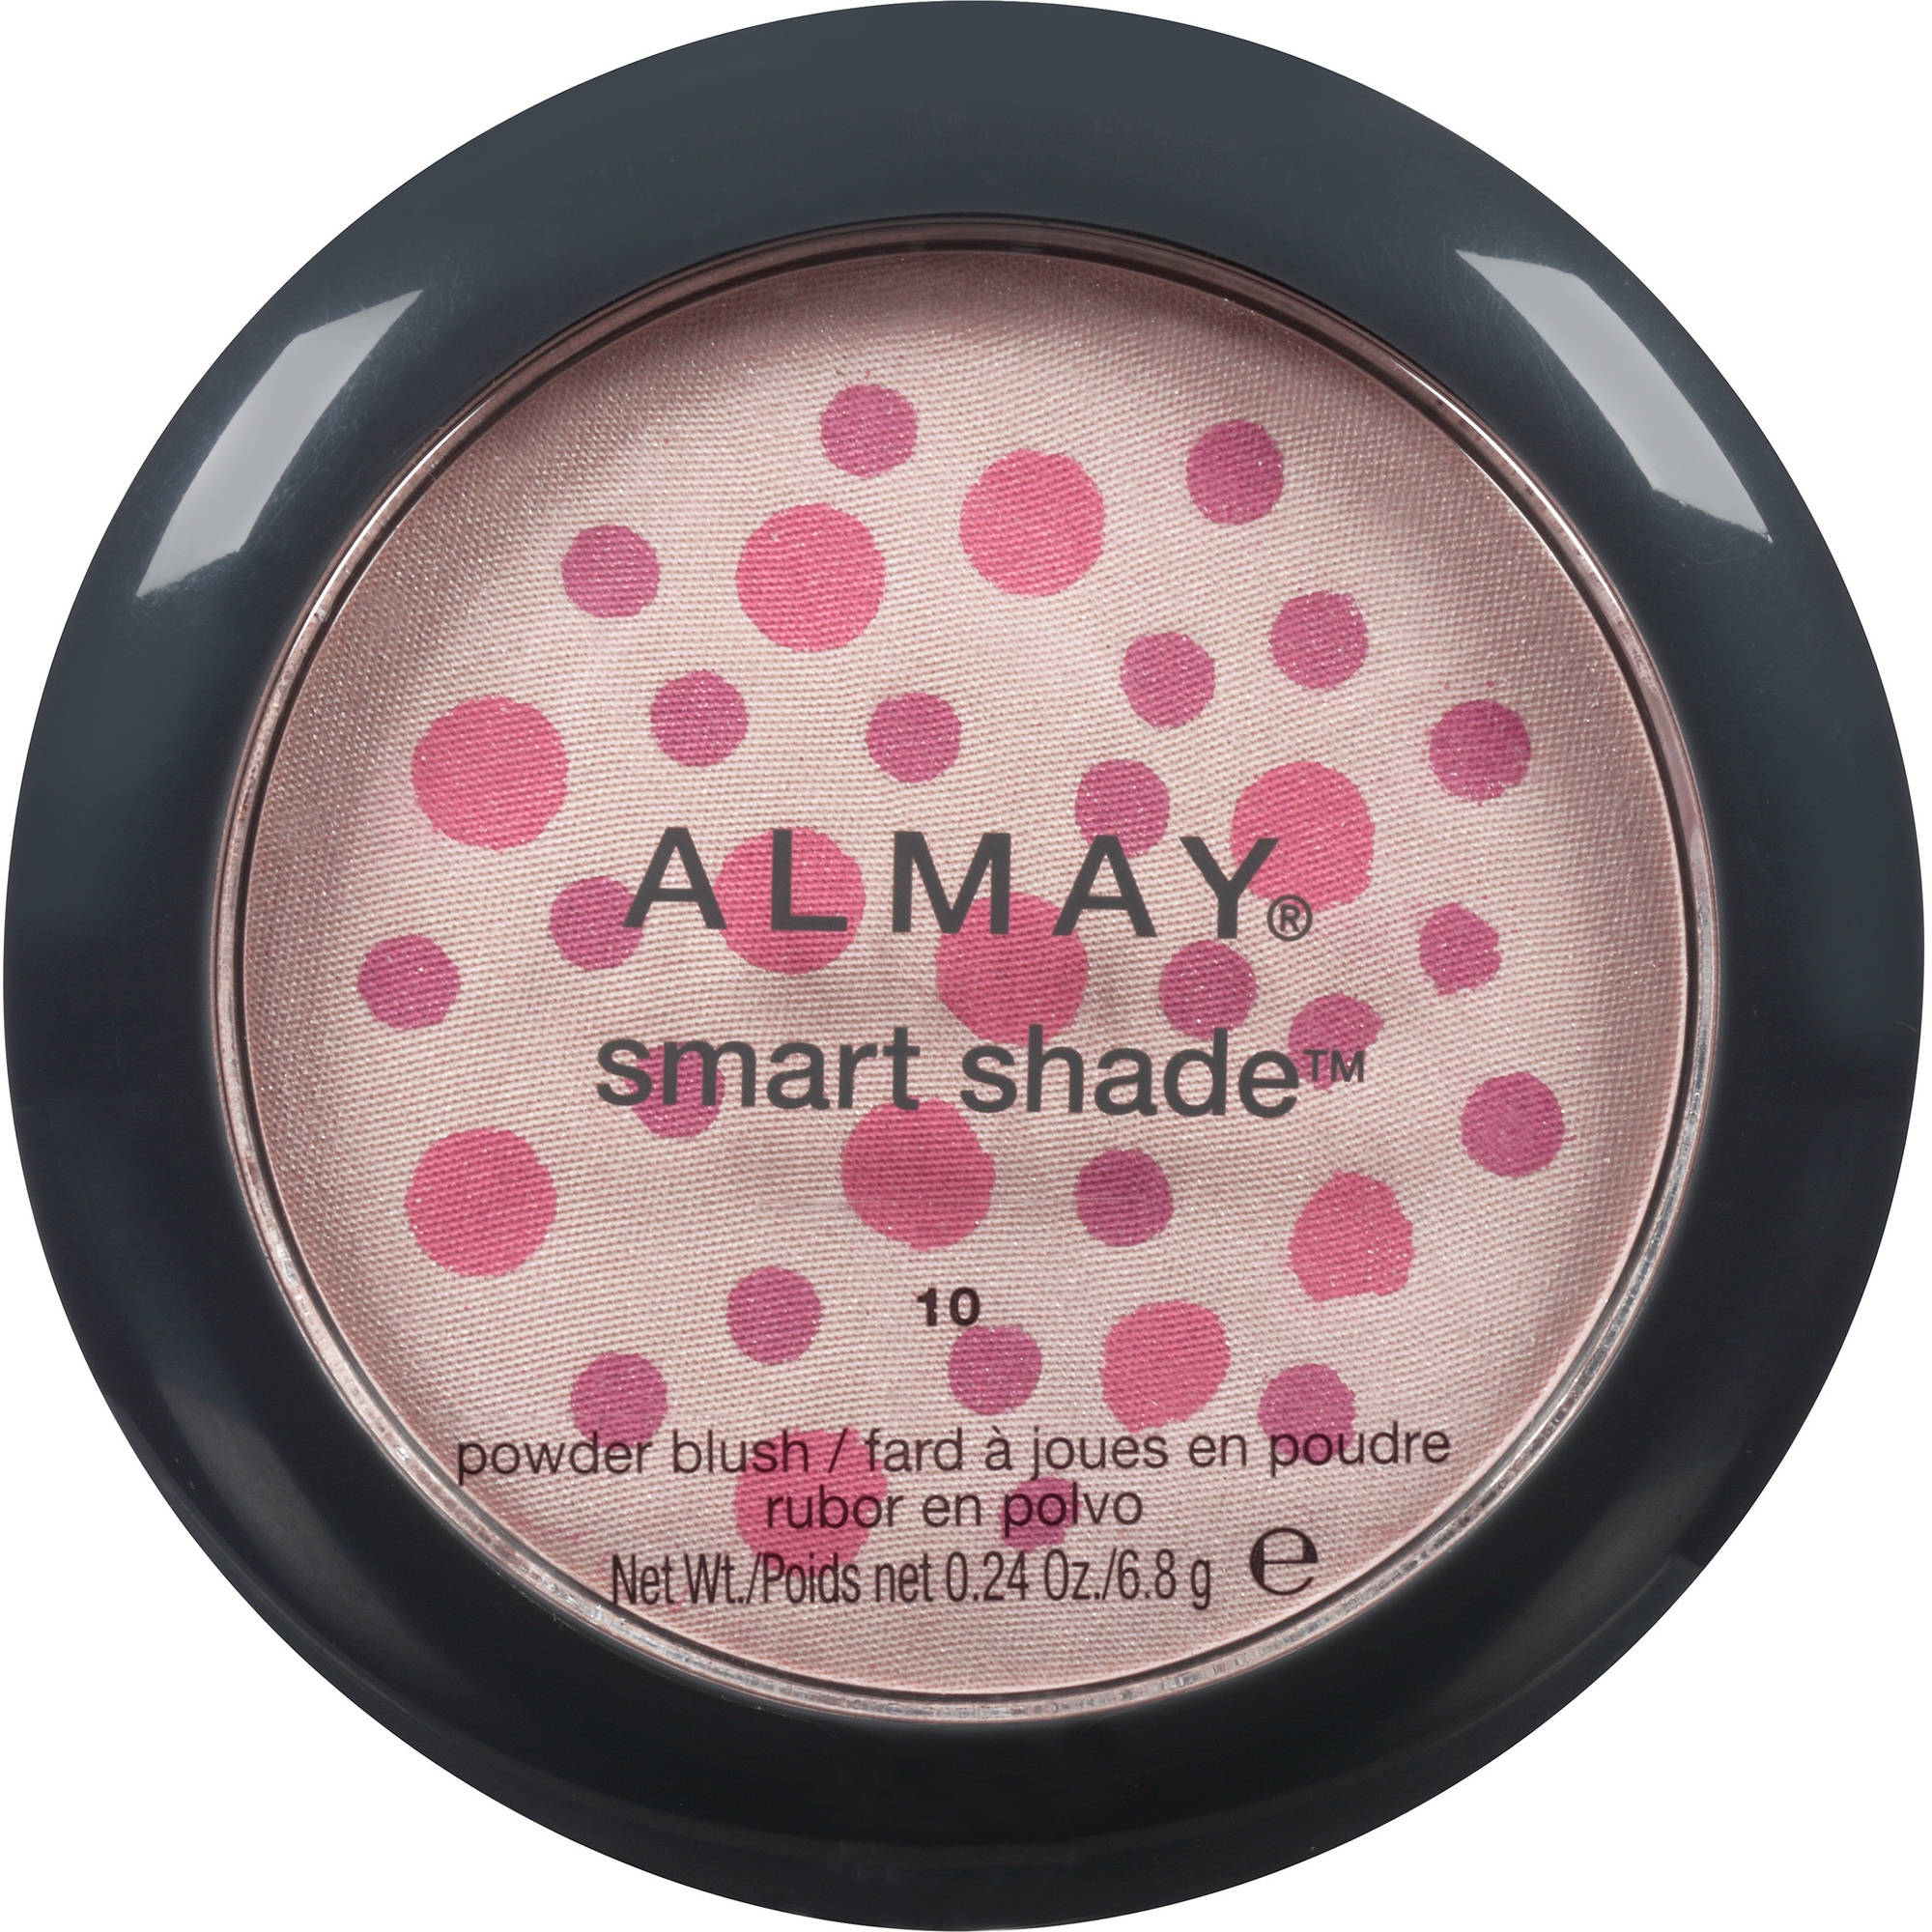 Almay Smart Shade Powder Blush, 10 Pink/Rose, 0.24 oz